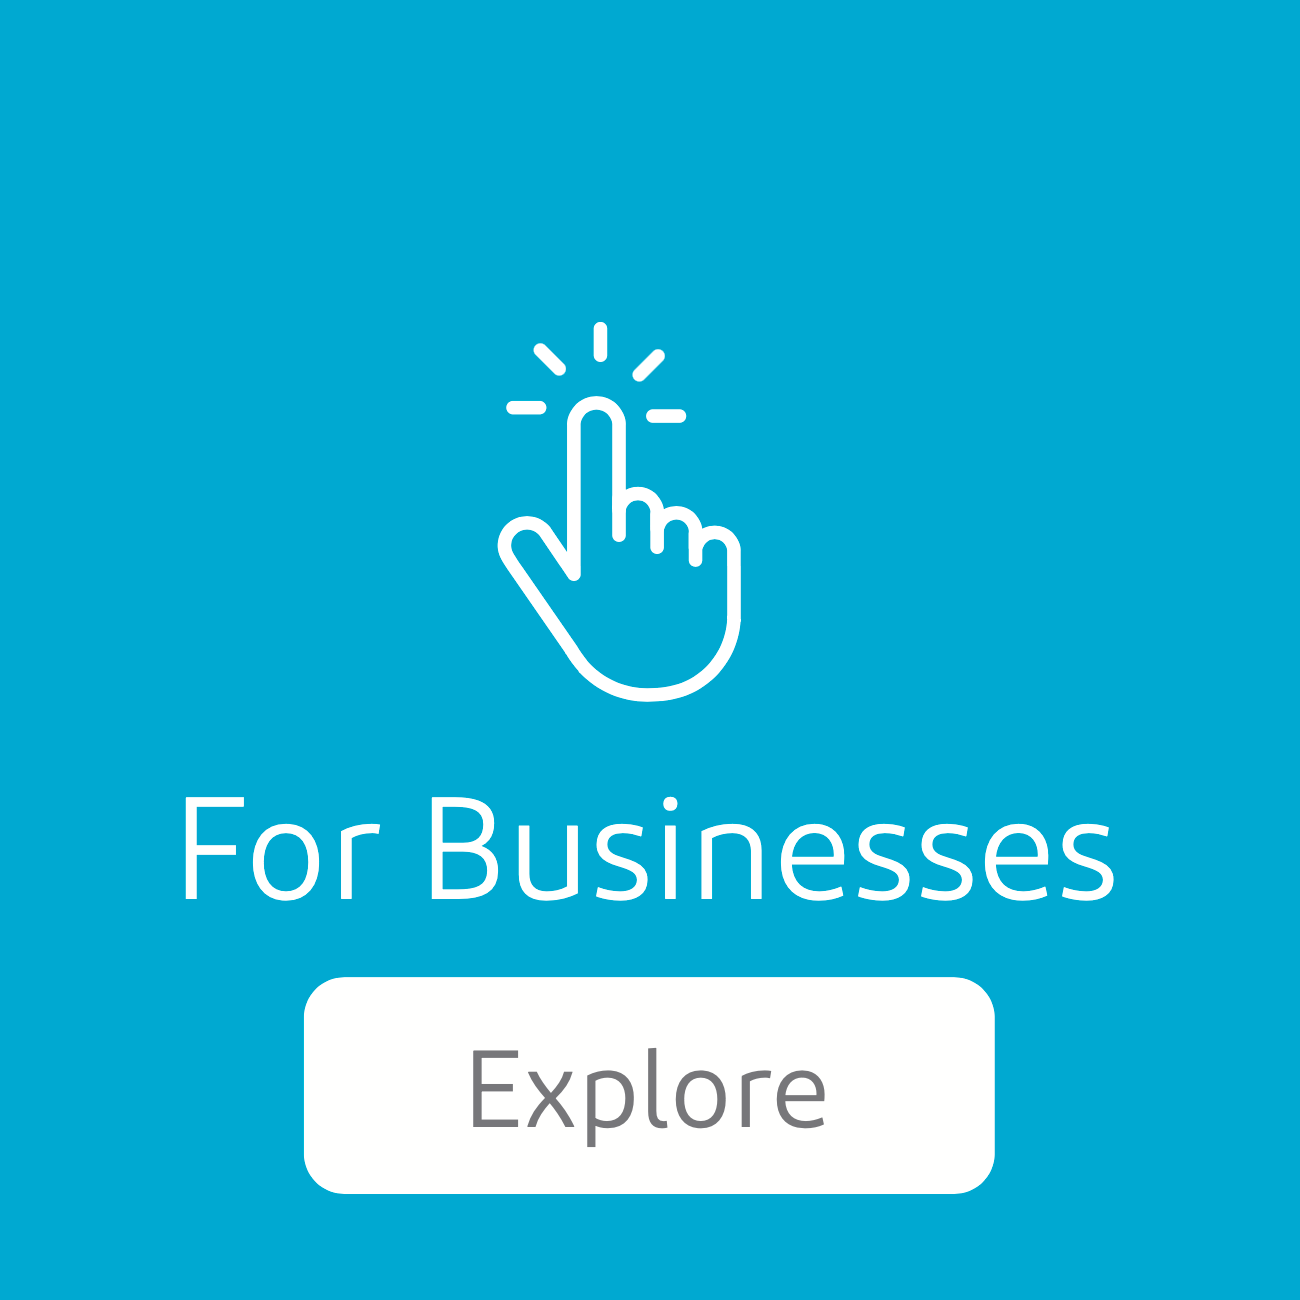 For Business - Explore